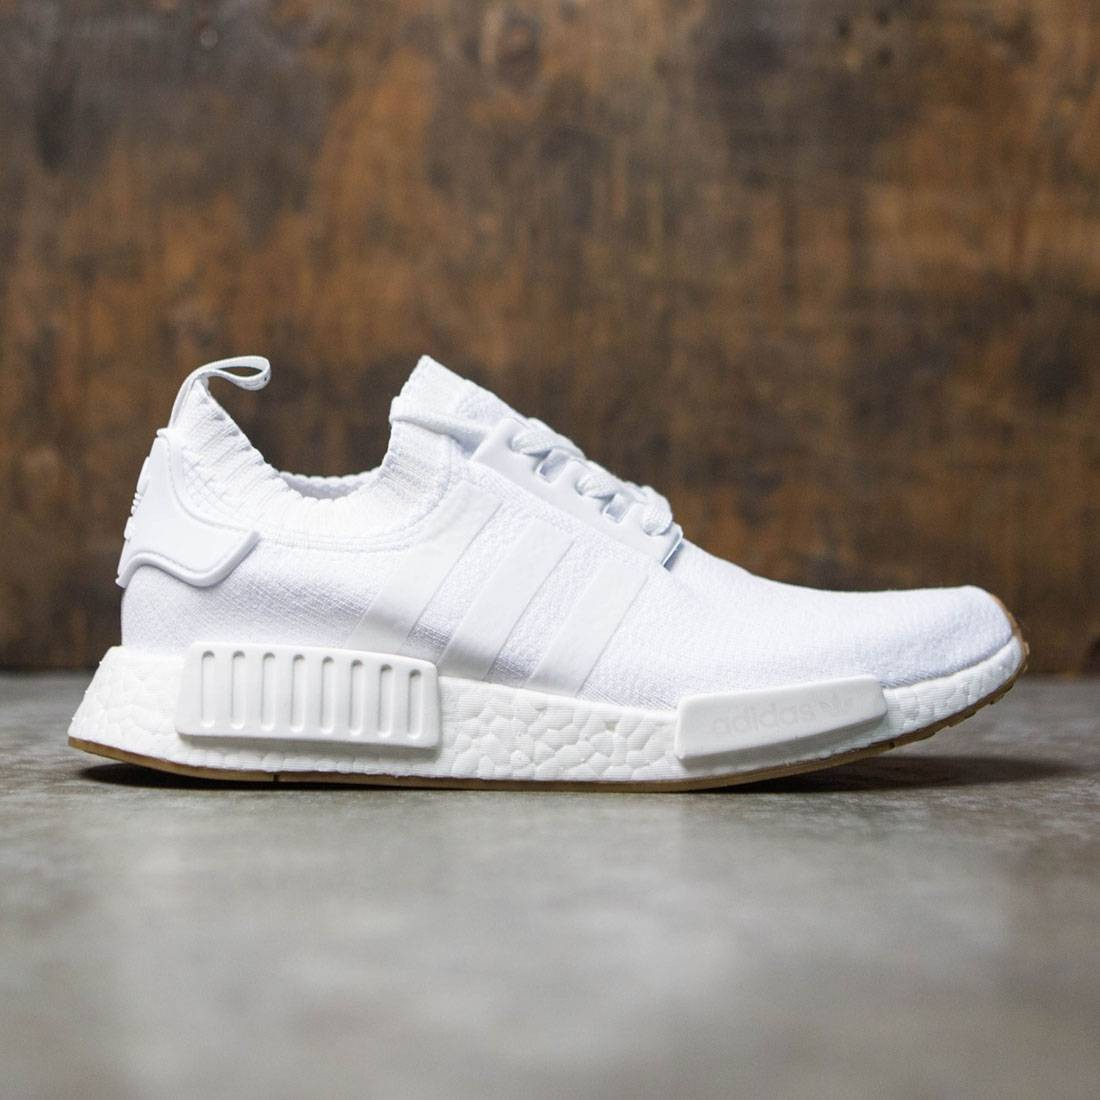 Adidas Nmd Mens White Buy 100 Authentic Adidas Sneakers Online